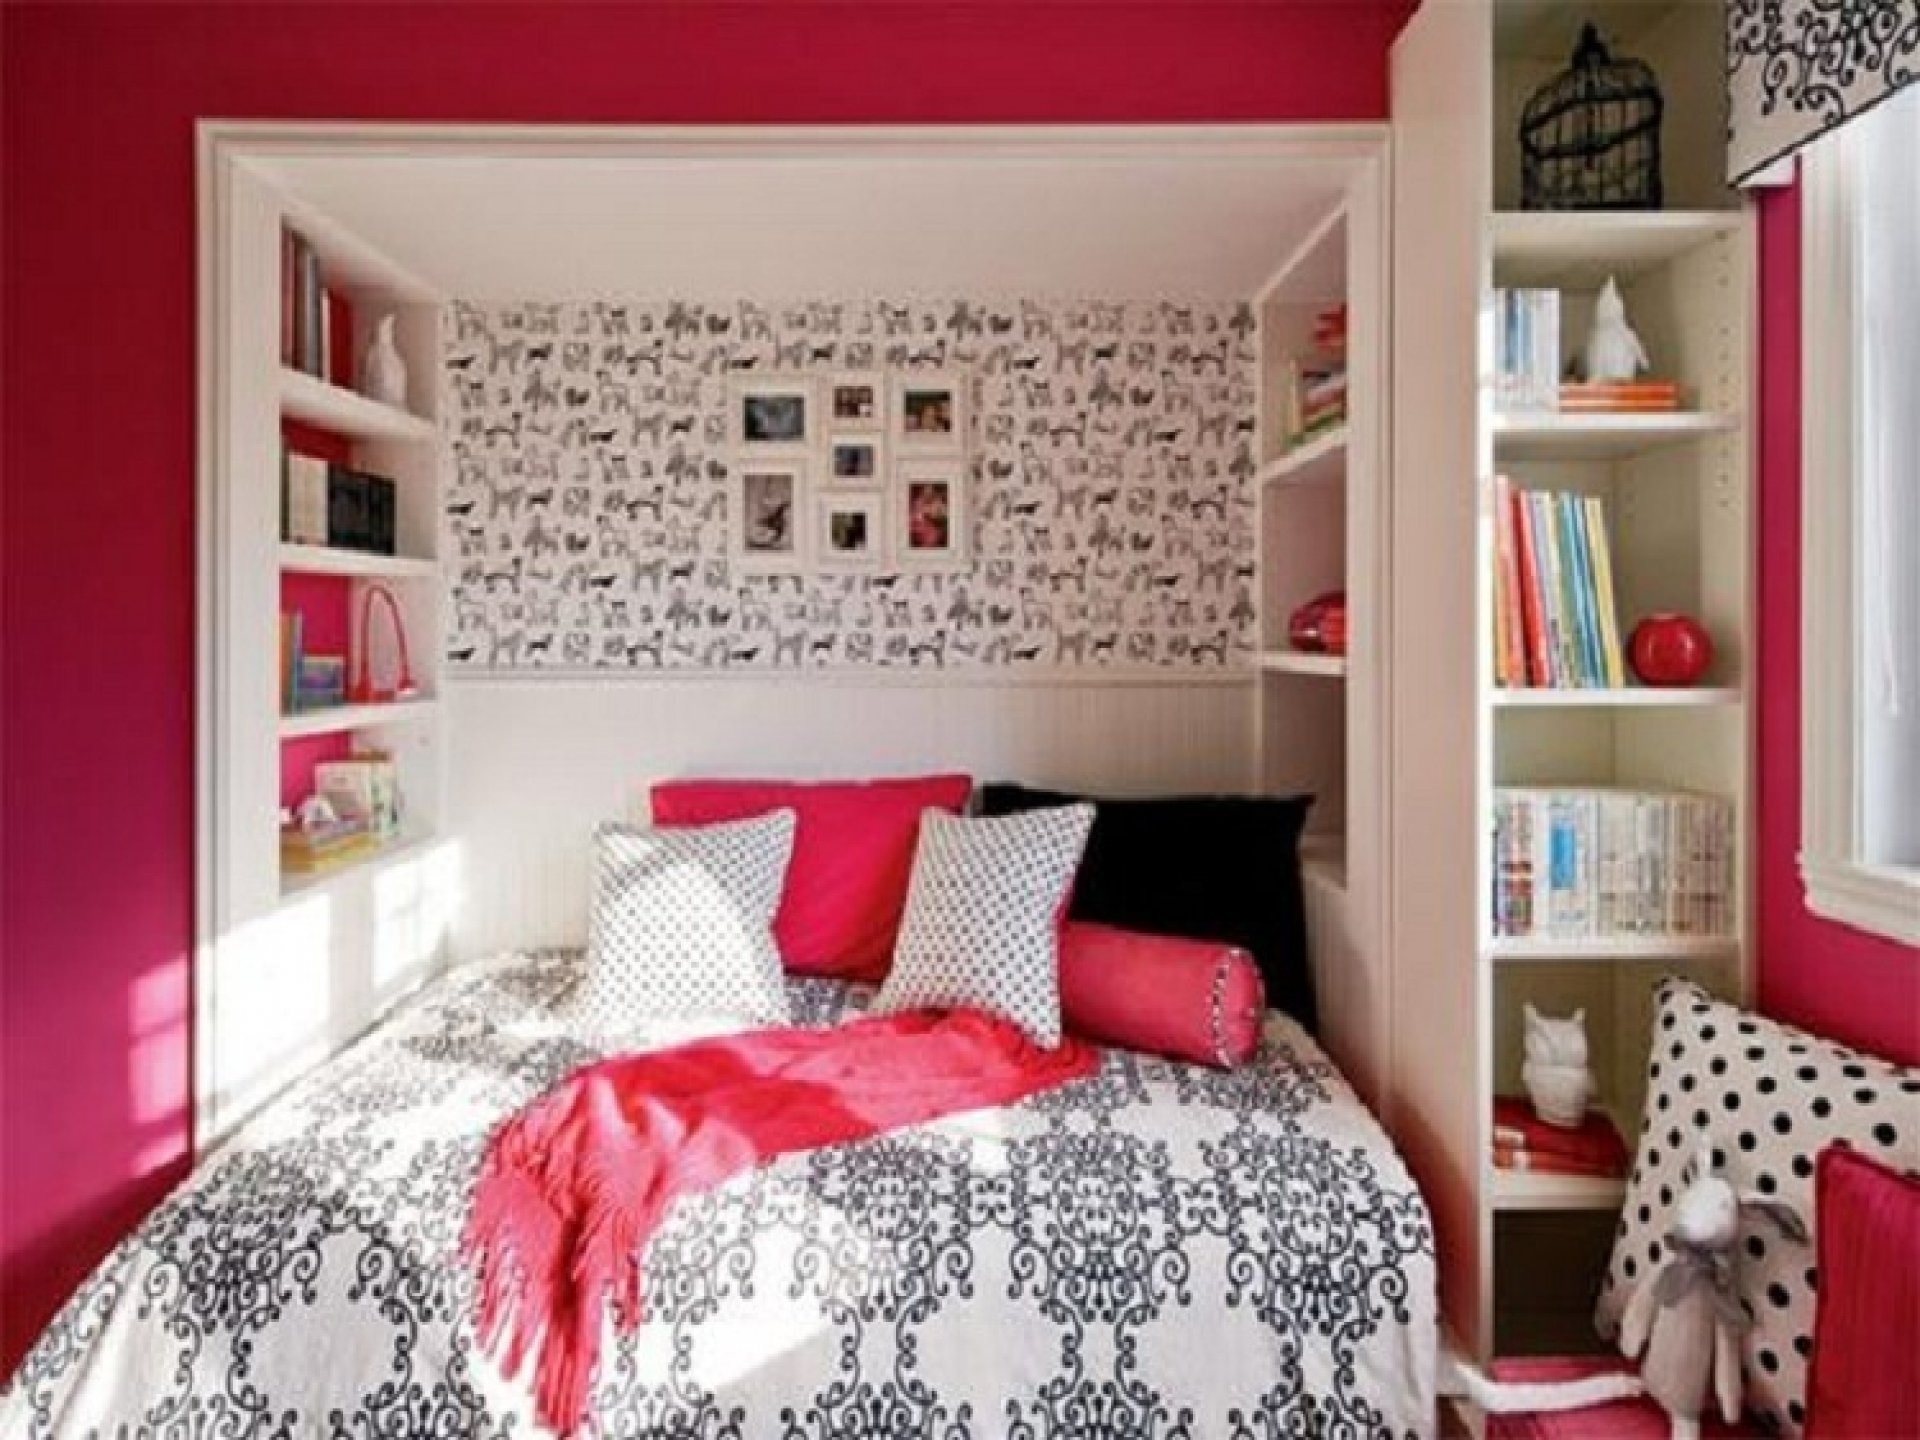 10 Perfect Rooms For Teenage Girls Ideas bedroom tween room ideas on a budget tween decorating ideas teenage 2 2020